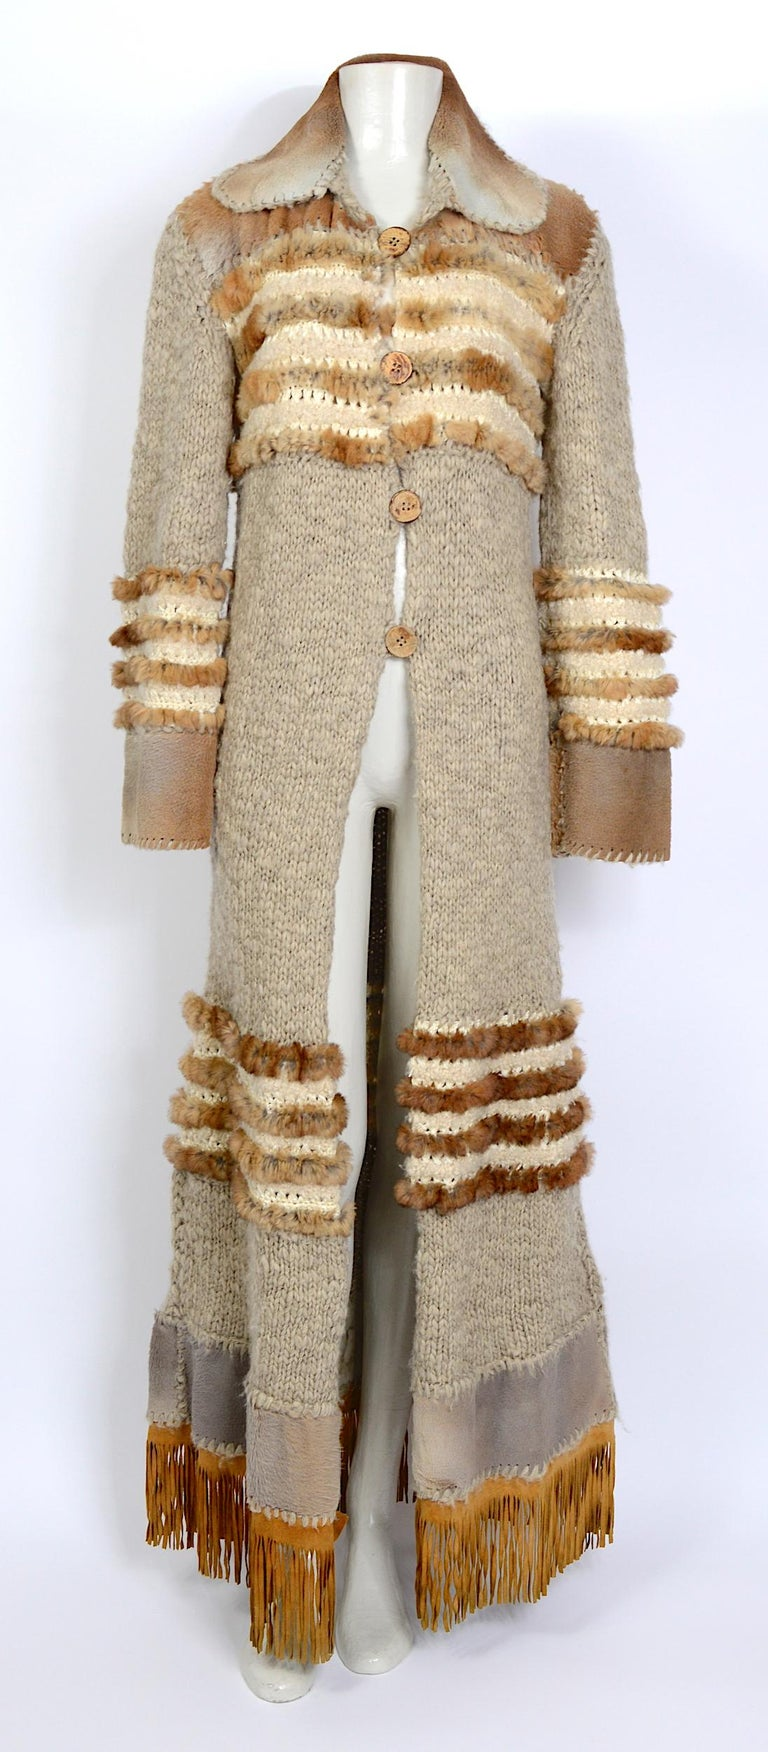 Christian Dior by John Galliano vintage fall 2000 yak cashmere knit and fur coat For Sale 2